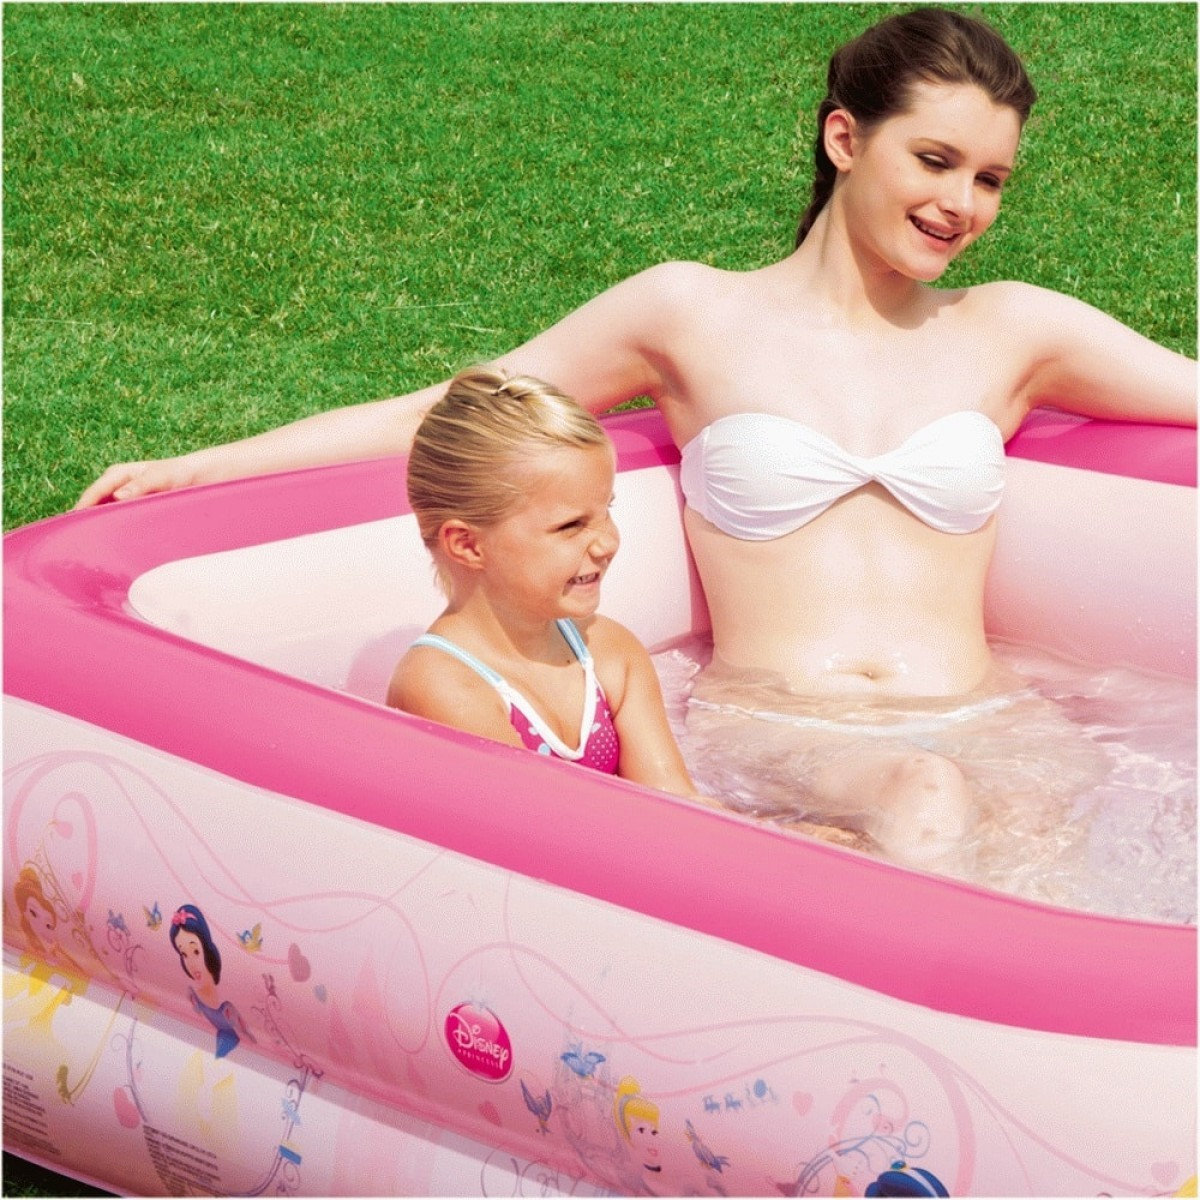 10 Creative Ways to Set Up an Inflatable Kids' Pool